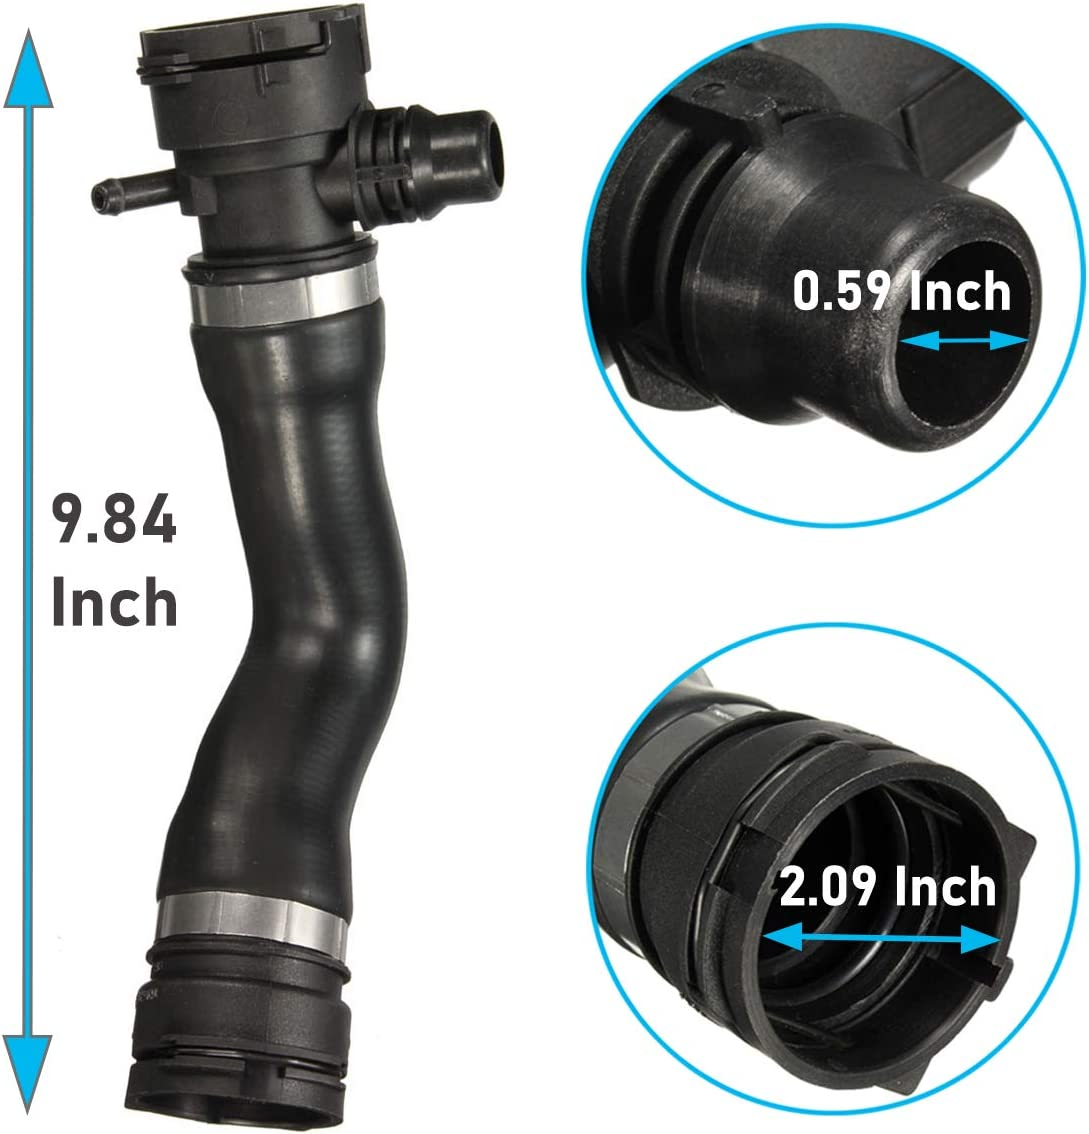 -Replace for 17127531579 Jaronx for BMW Engine Upper Radiator Coolant Water Hose Pipe,from Engine to Radiator for BMW 1 Series E82//E87//E88,3 Series E90//E91//E92//E93,X1 E84,Z4 E89 N51//N52//N52N//N53